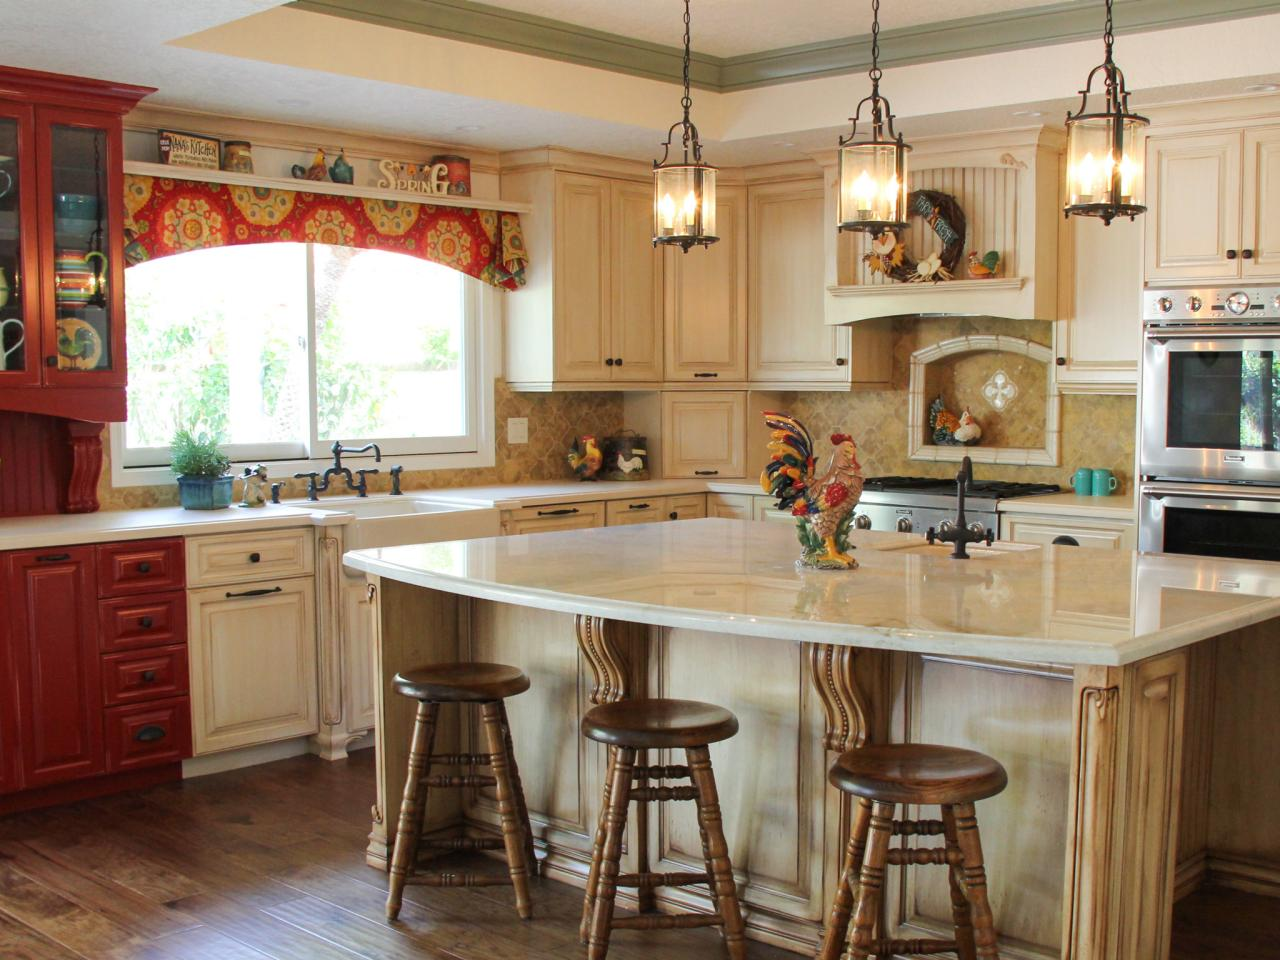 Country kitchen with red and white cabinets hgtv for Country kitchen cabinets